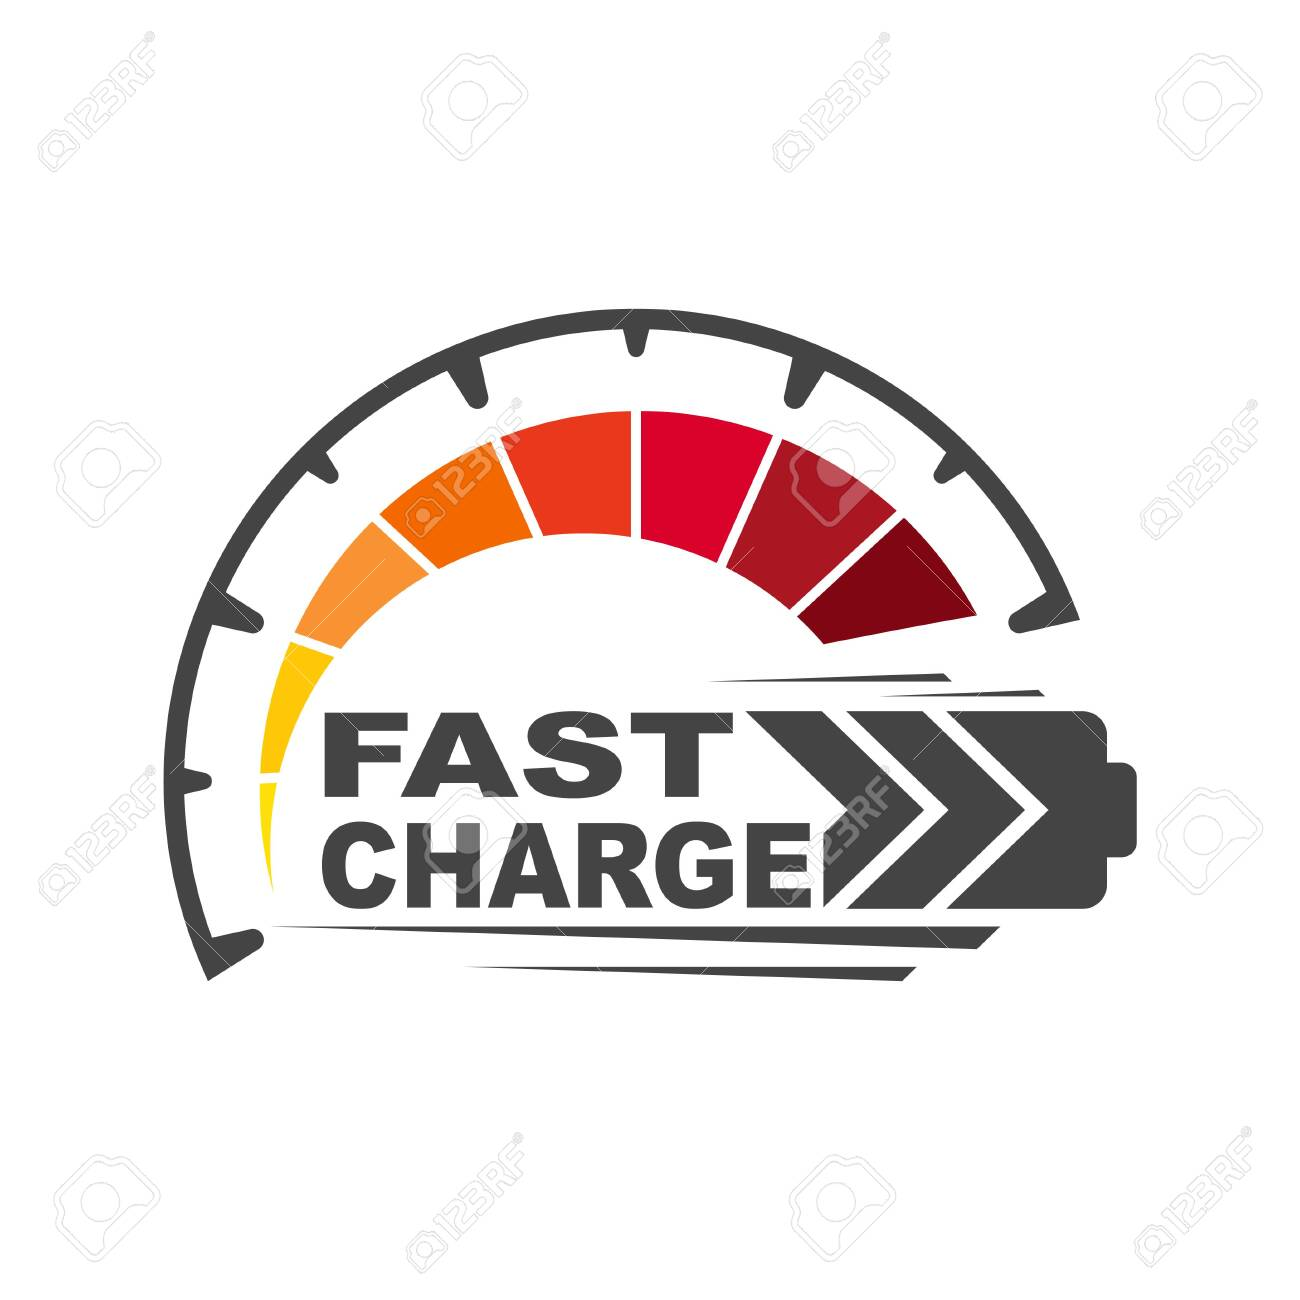 Battery charging icon. Quick and fast charge icon. EPS 10. - 132274634